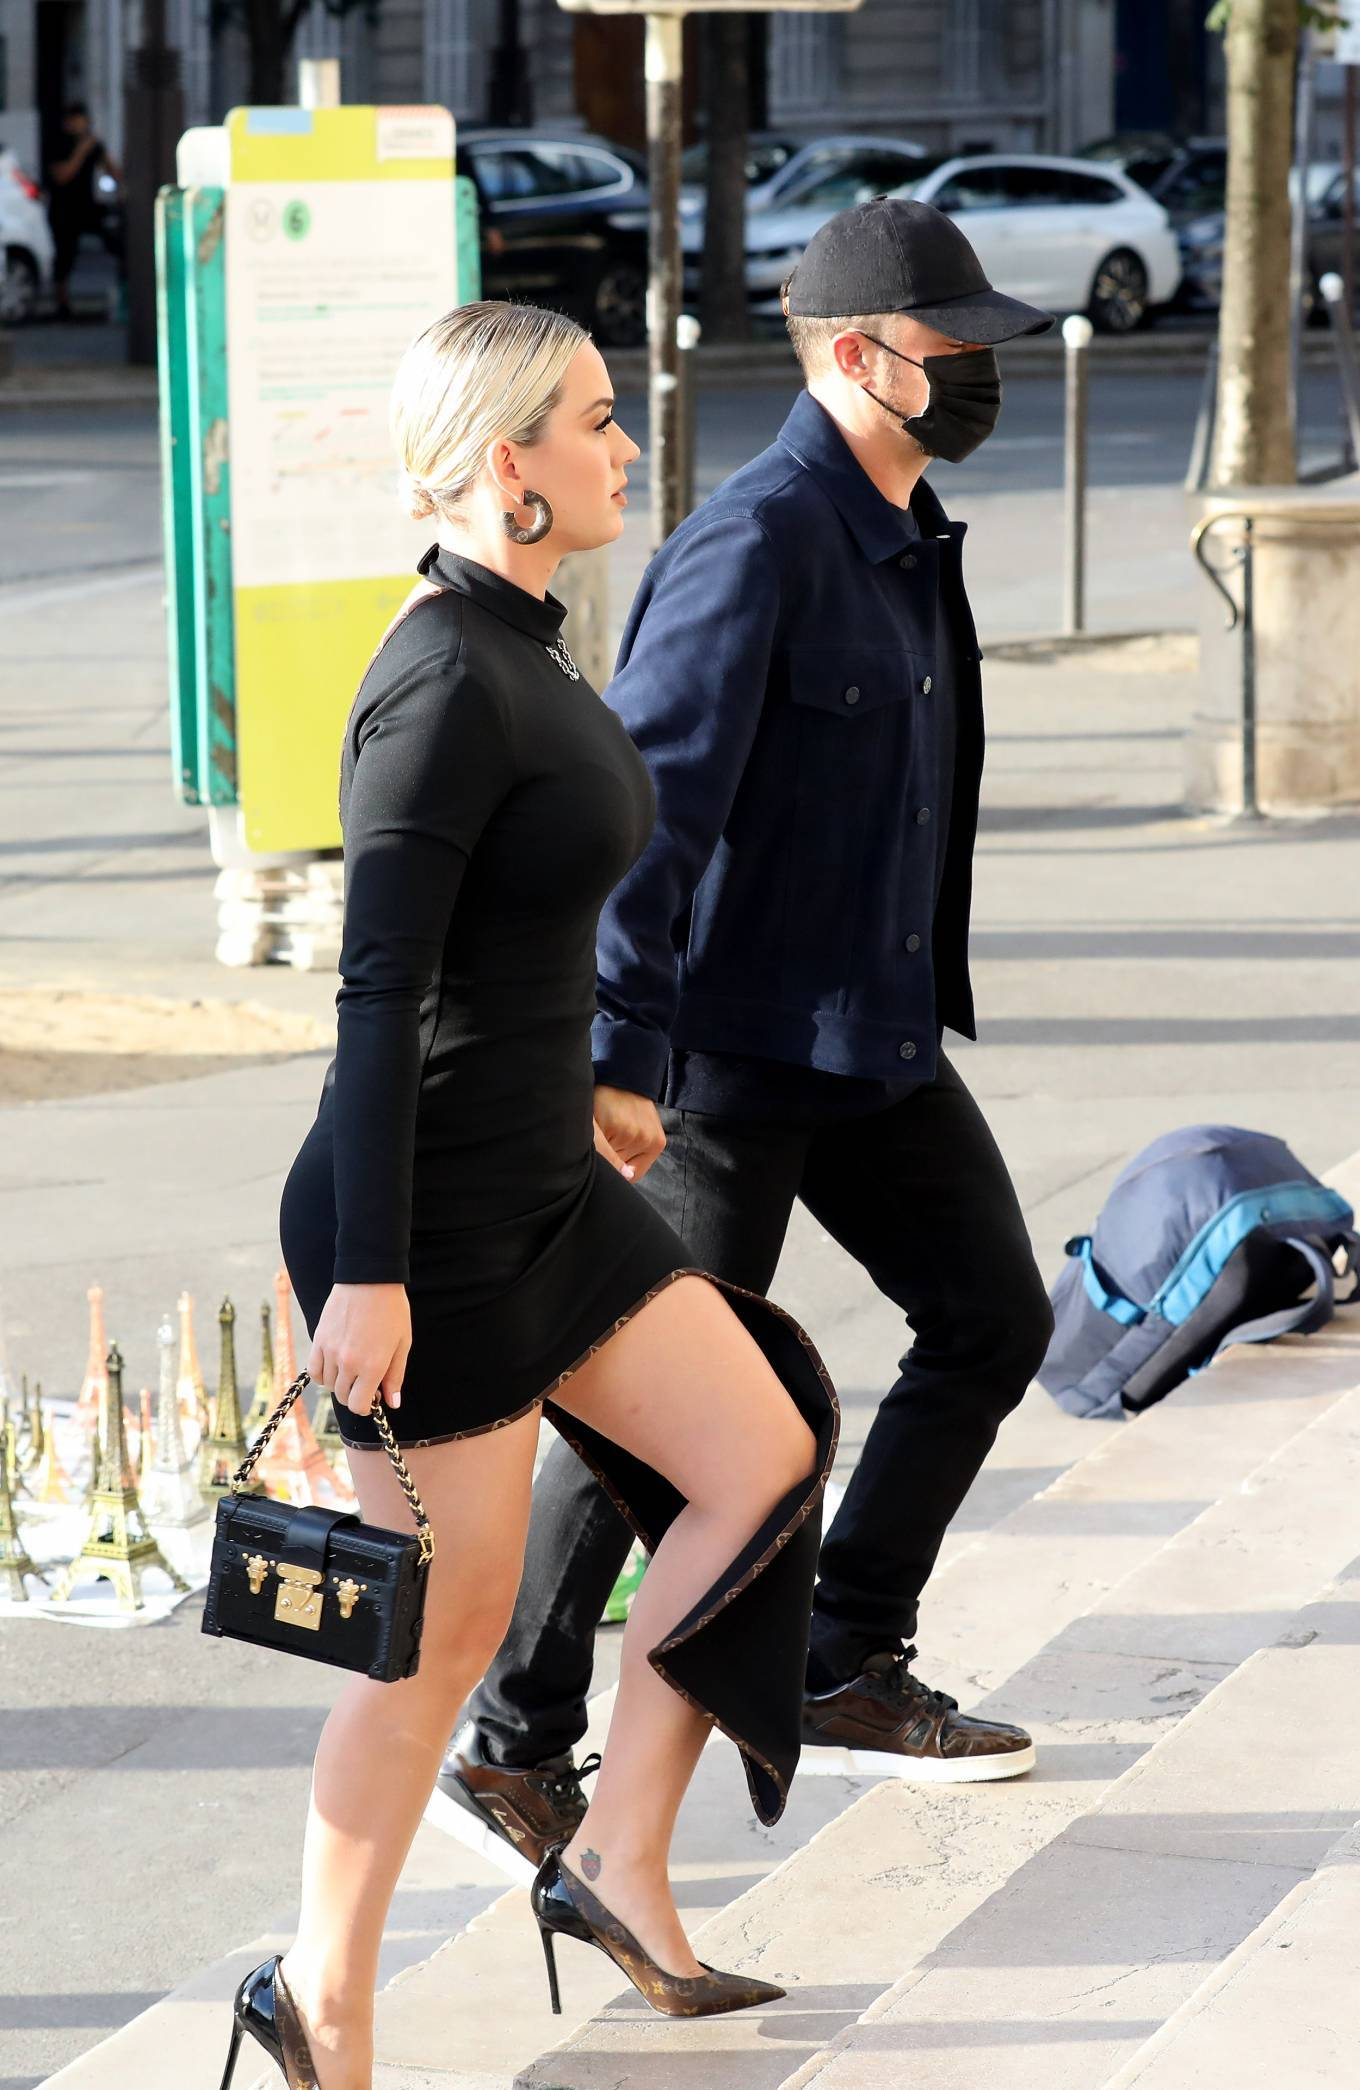 Katy Perry - Pictured at La Girafe Restaurant in Paris